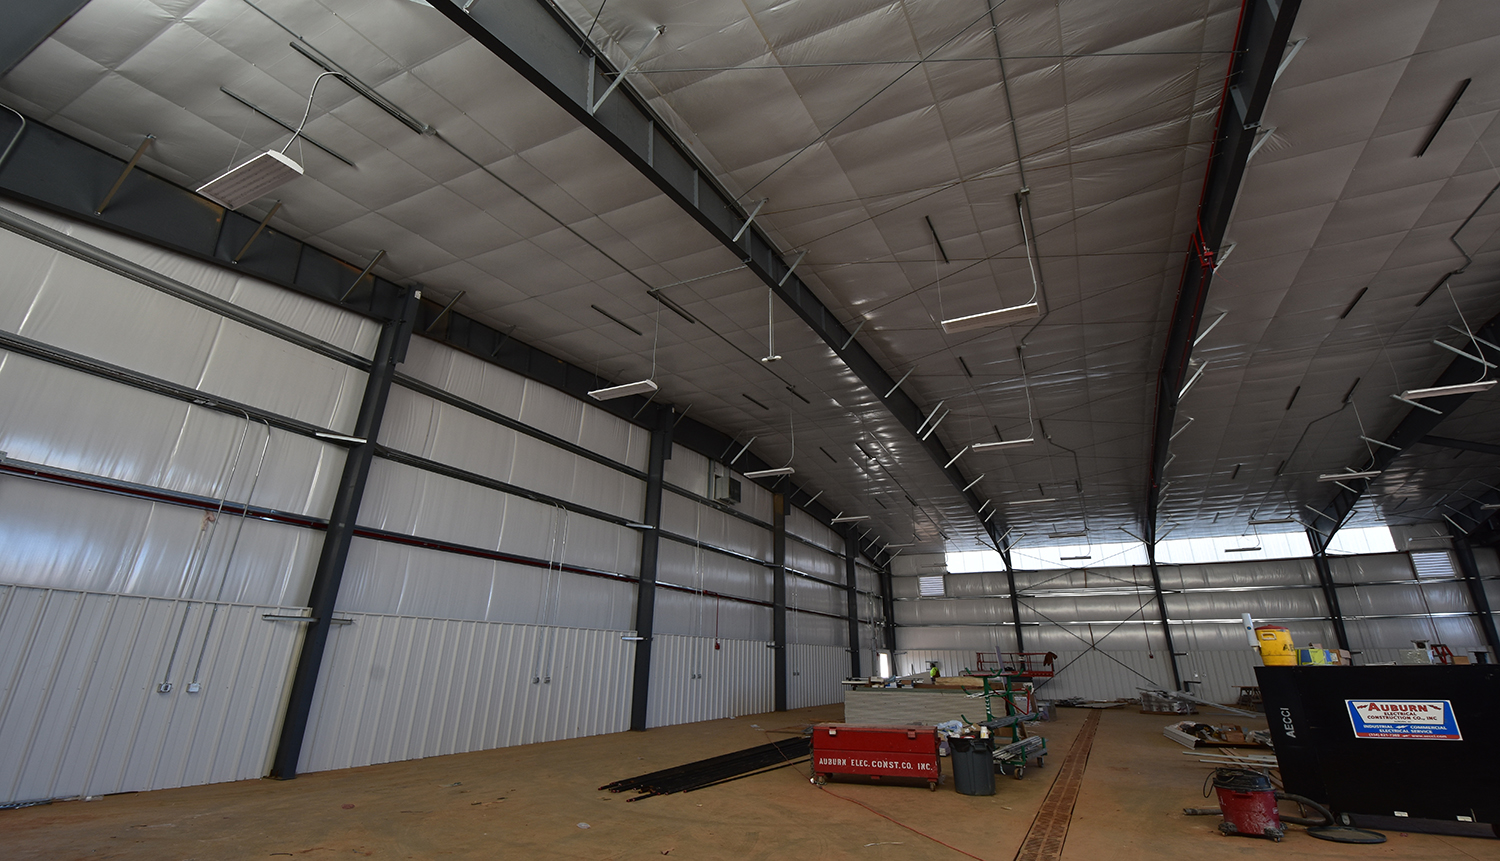 Airport Maintenance Hangar (January 2018)